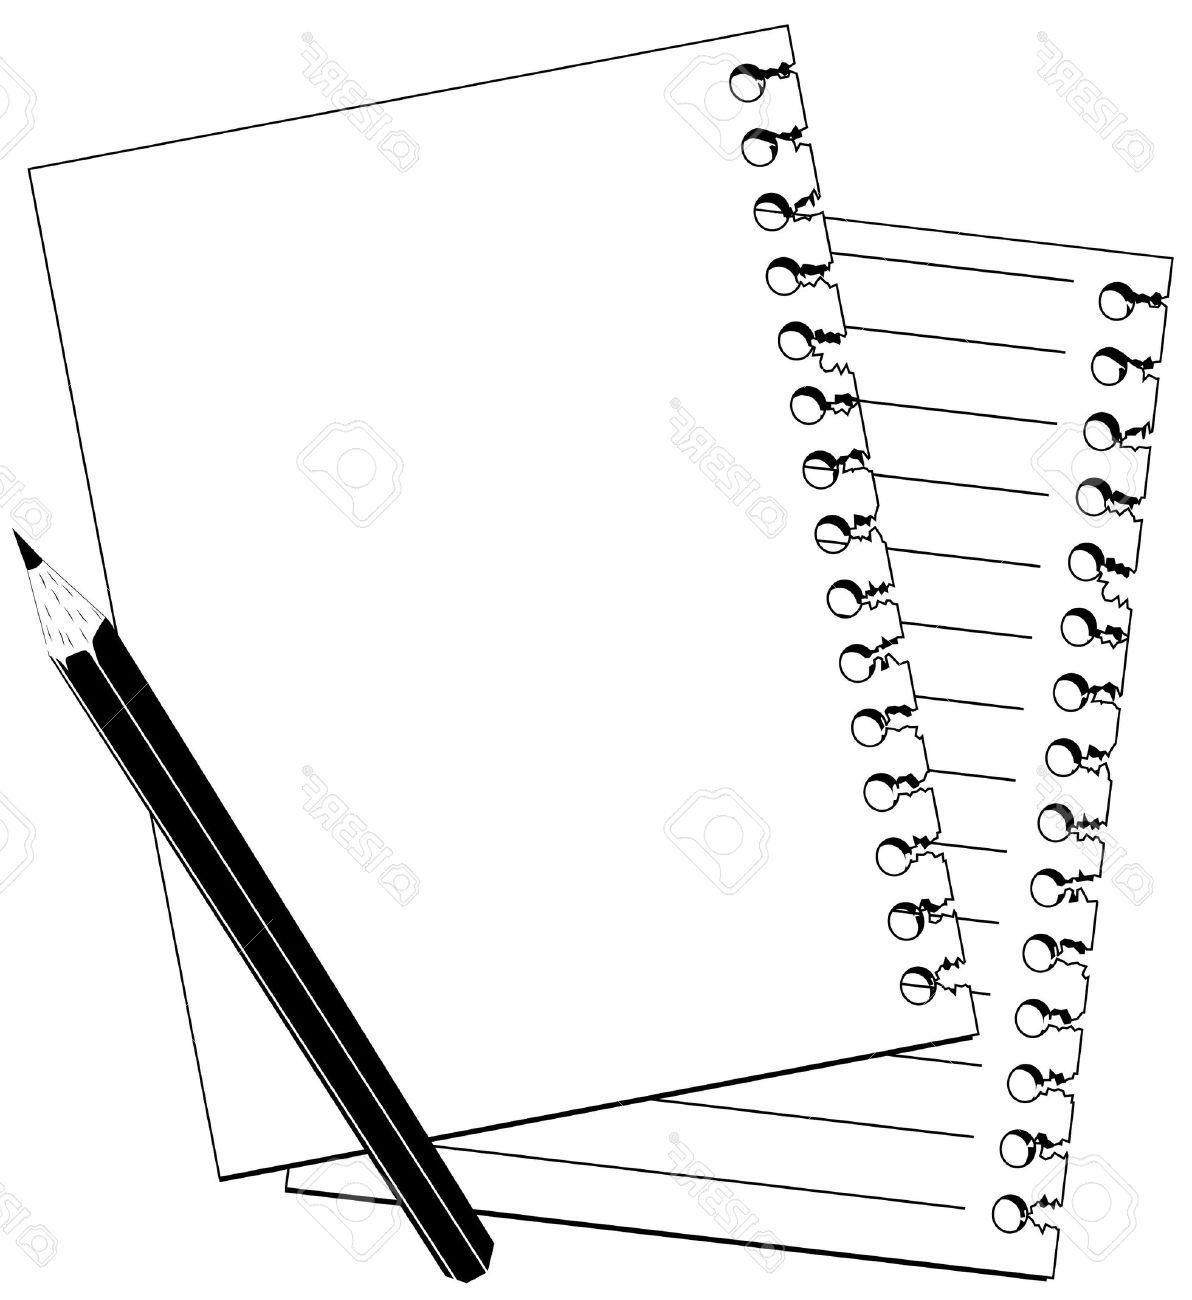 1192x1300 Unique Note And Pencil Stock Vector Page Border Clipart Pictures